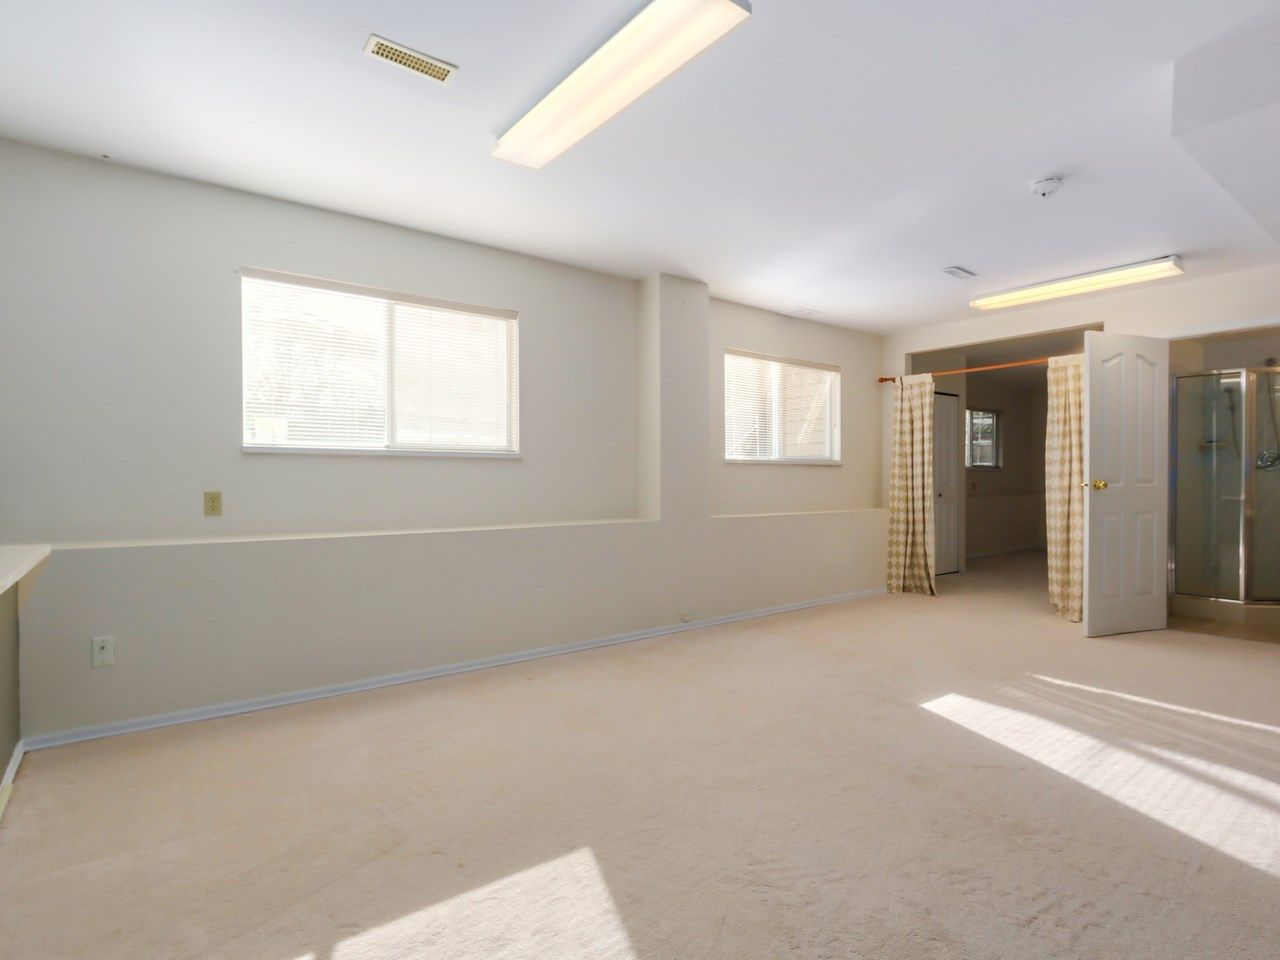 """Photo 16: Photos: 2868 TEMPE KNOLL Drive in North Vancouver: Tempe House for sale in """"TEMPE"""" : MLS®# R2046593"""